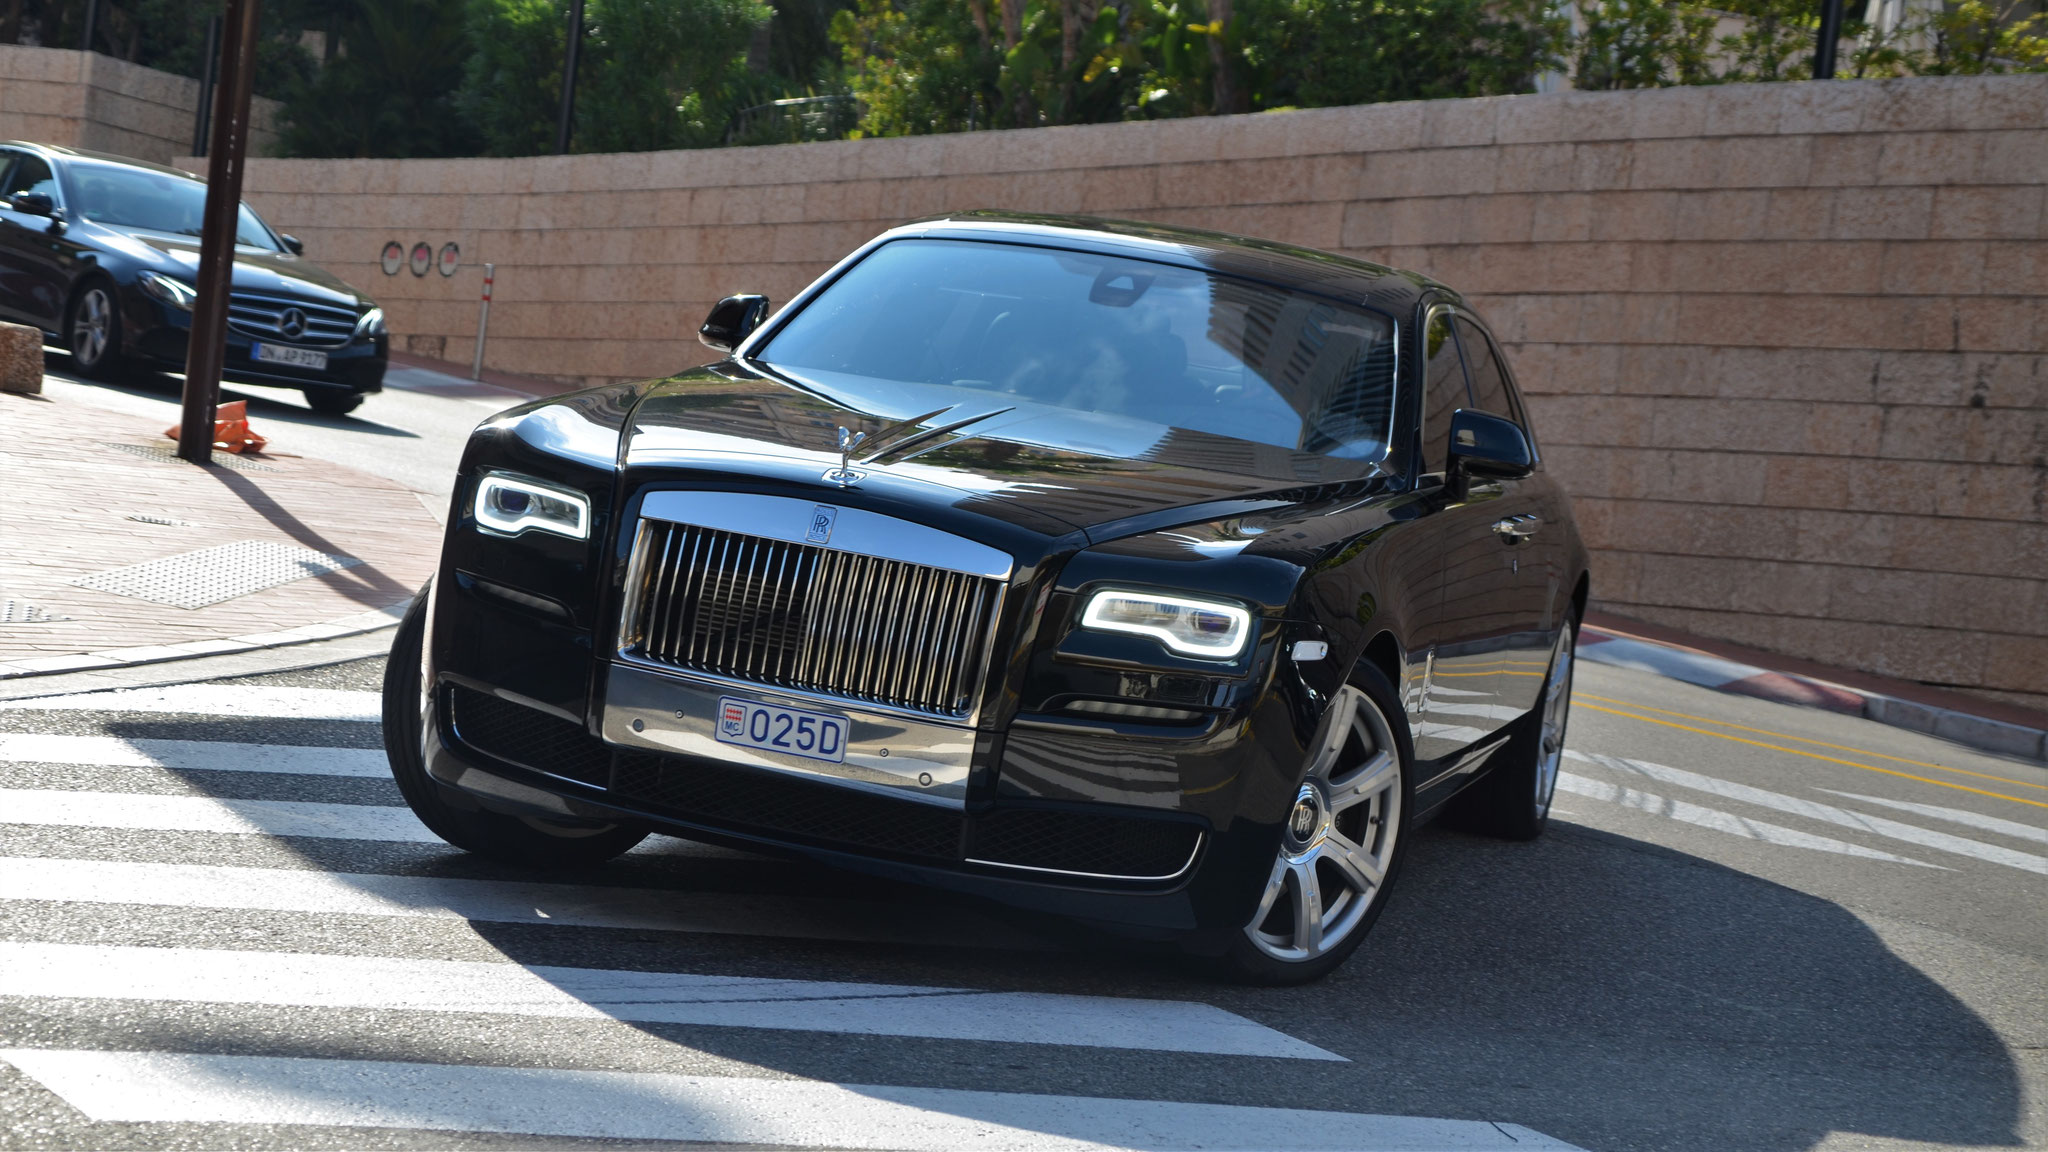 Rolls Royce Ghost Series II - 025D (MC)